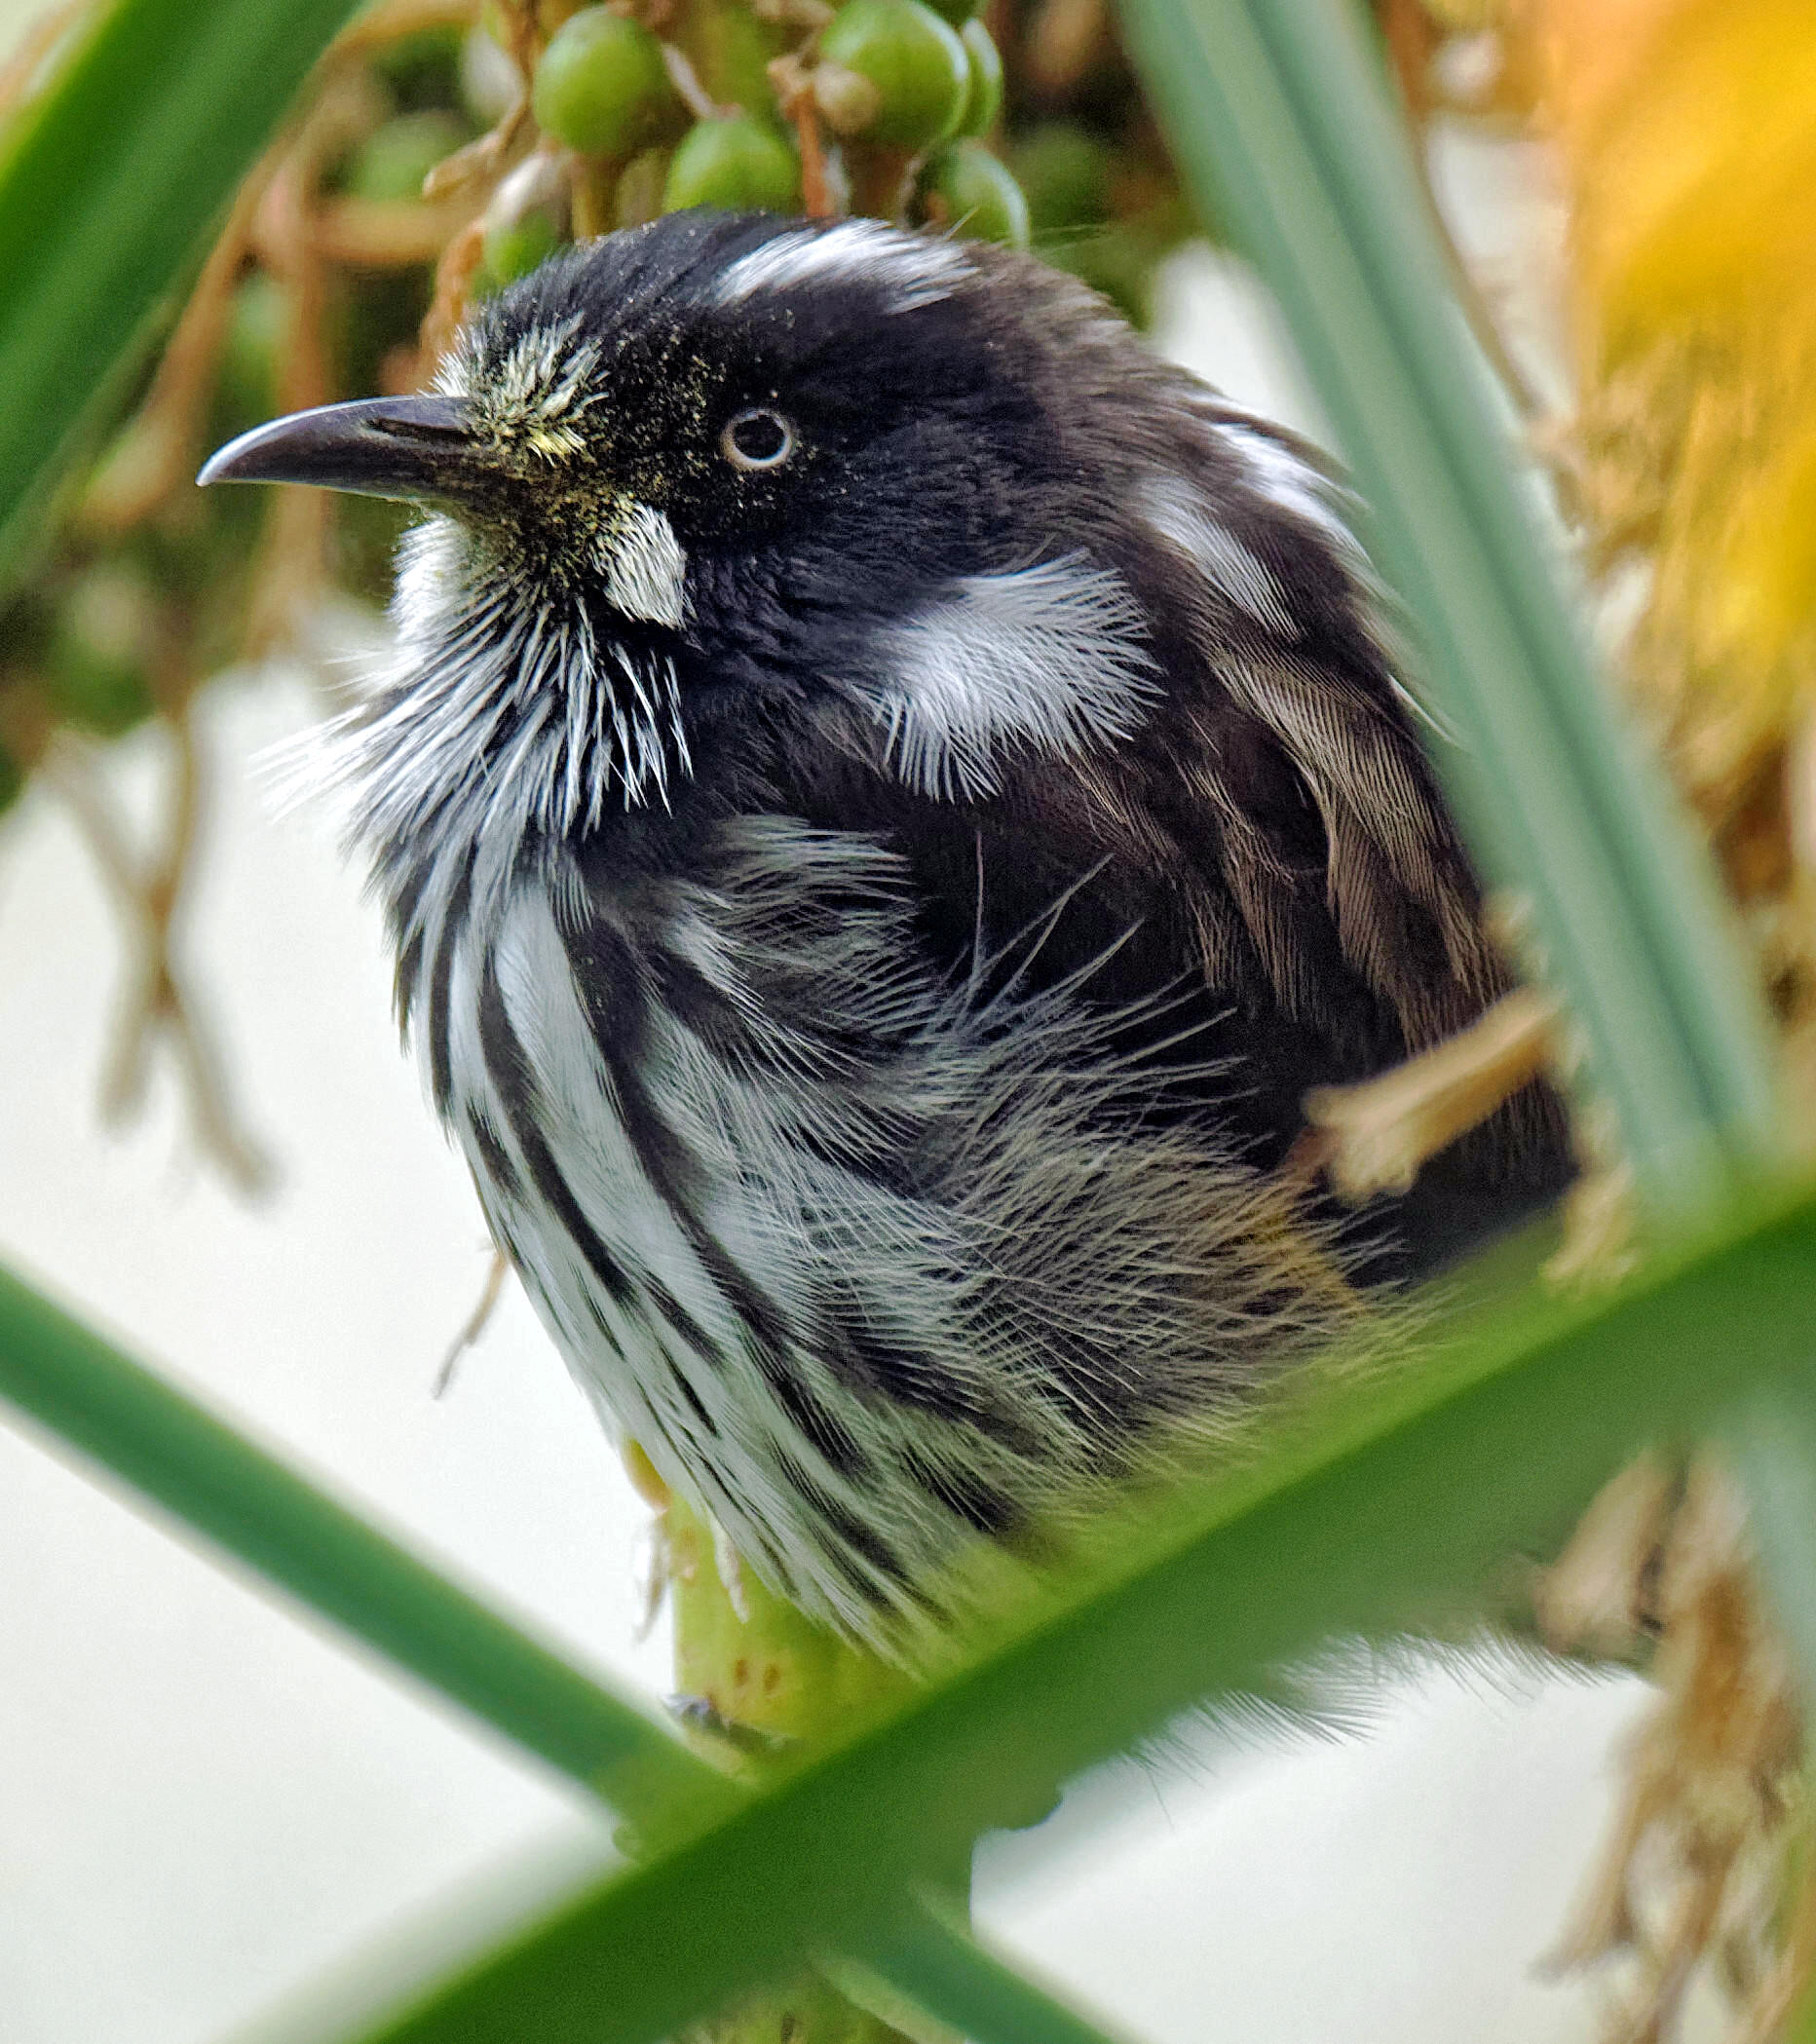 Honeyeater-10.jpeg